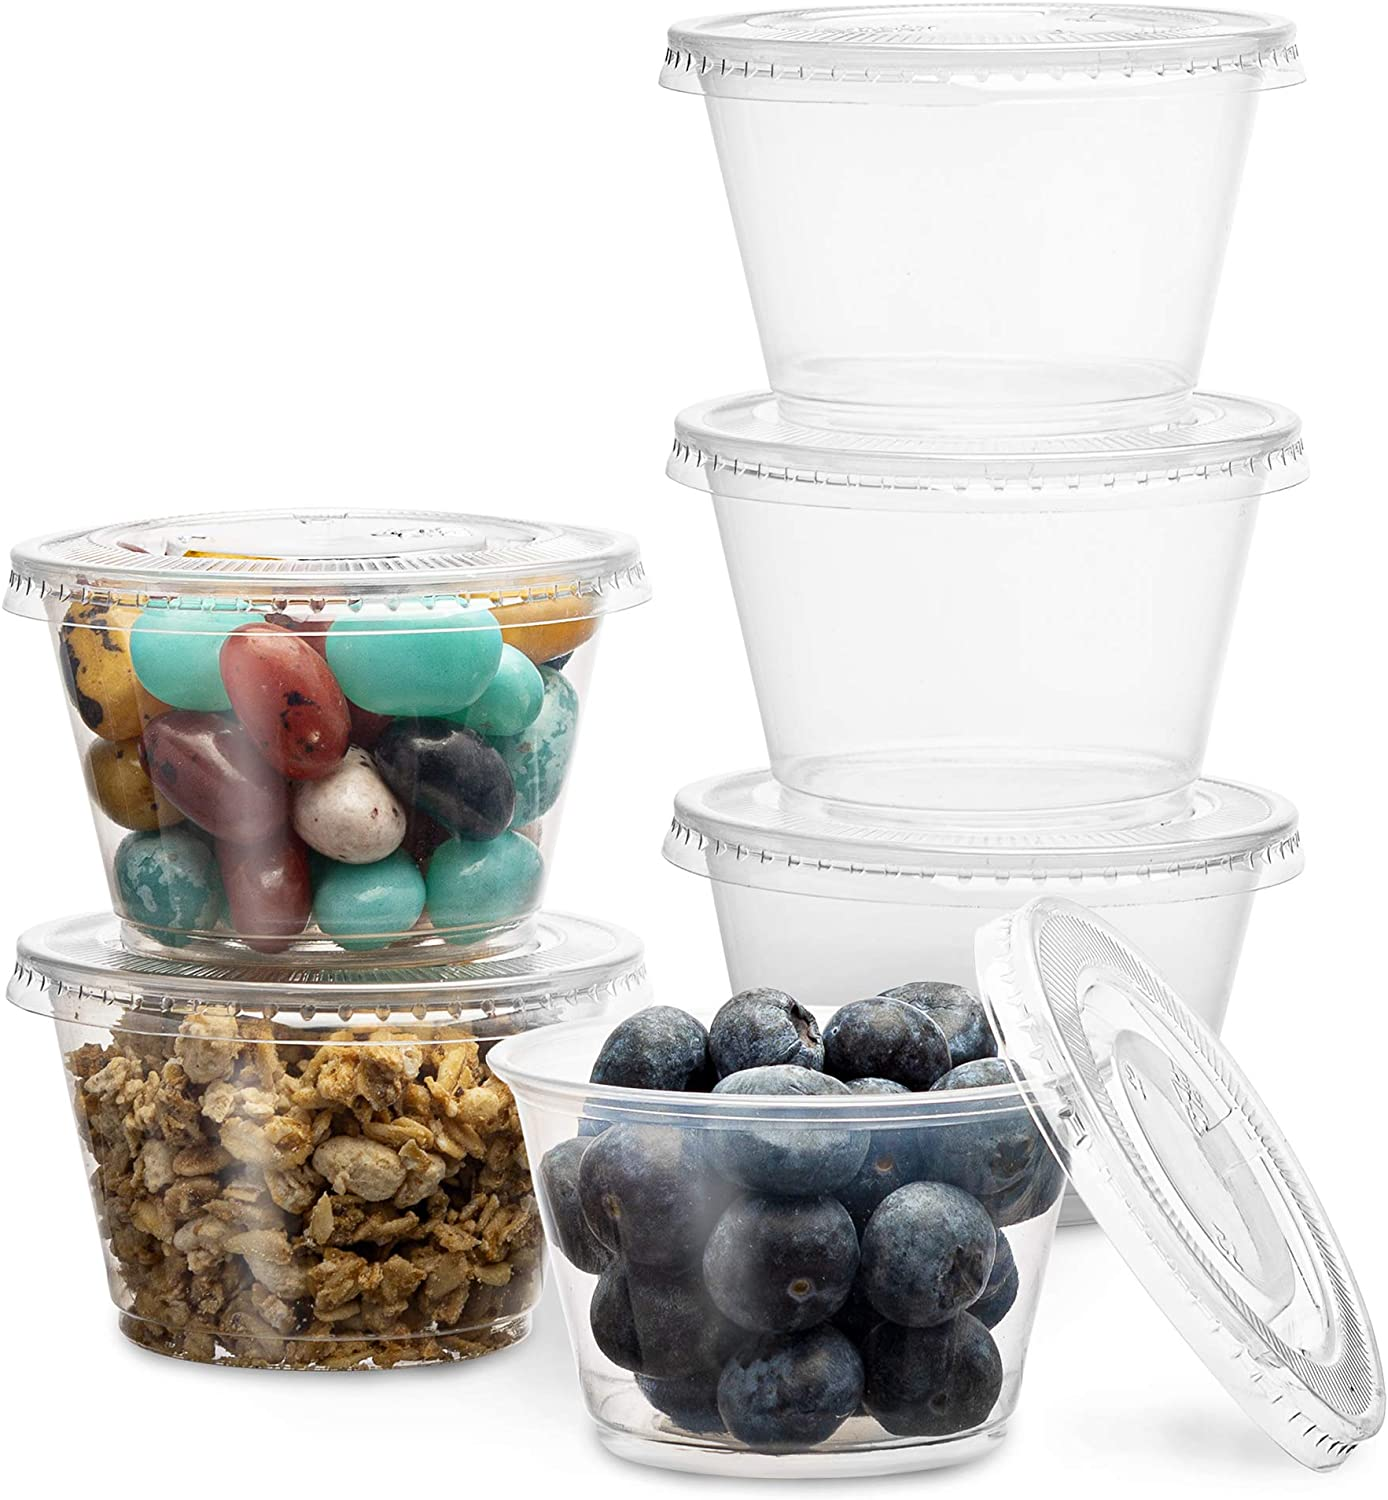 PlastiMade Clear Disposable Plastic Portion Cups With Lids (100 Sets - 4 Oz) - Disposable Condiment Cups, Sauce/Dip/Dressing Cups, Souffle Cups & Jello Shot Cups With Lids | Great Sampling Containers